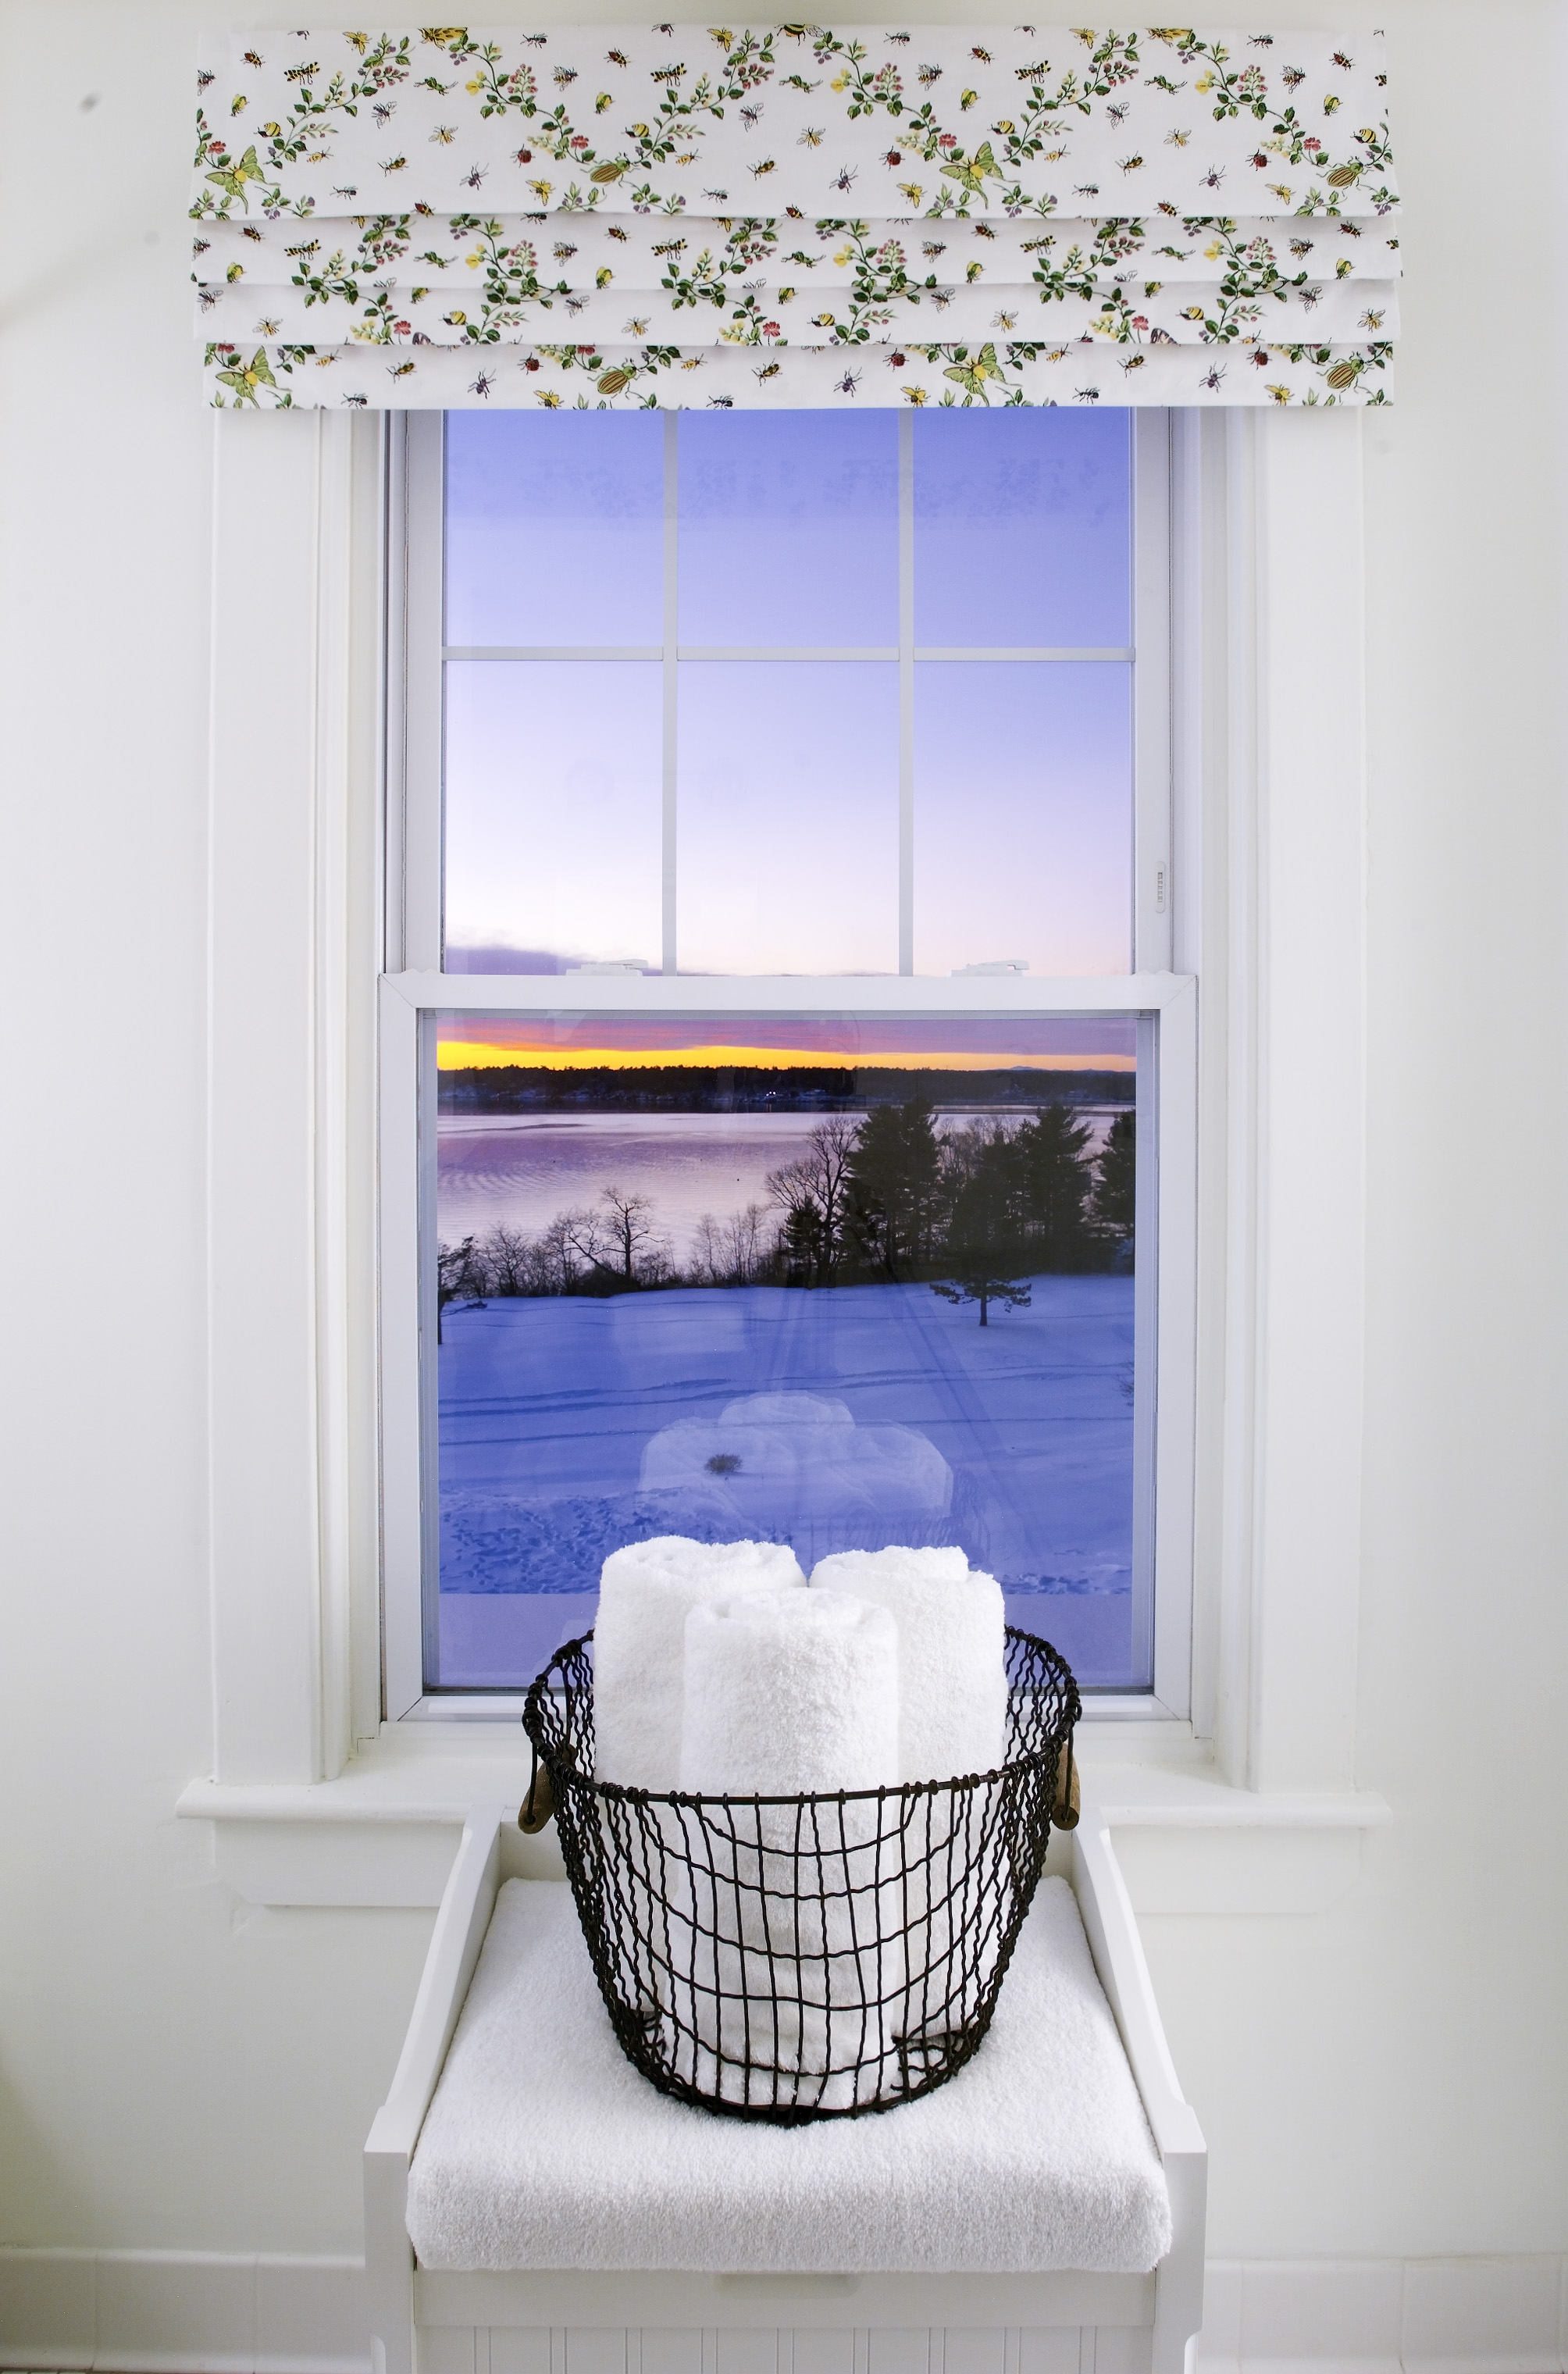 20031216.Chebeague.BathWindow1.jpg